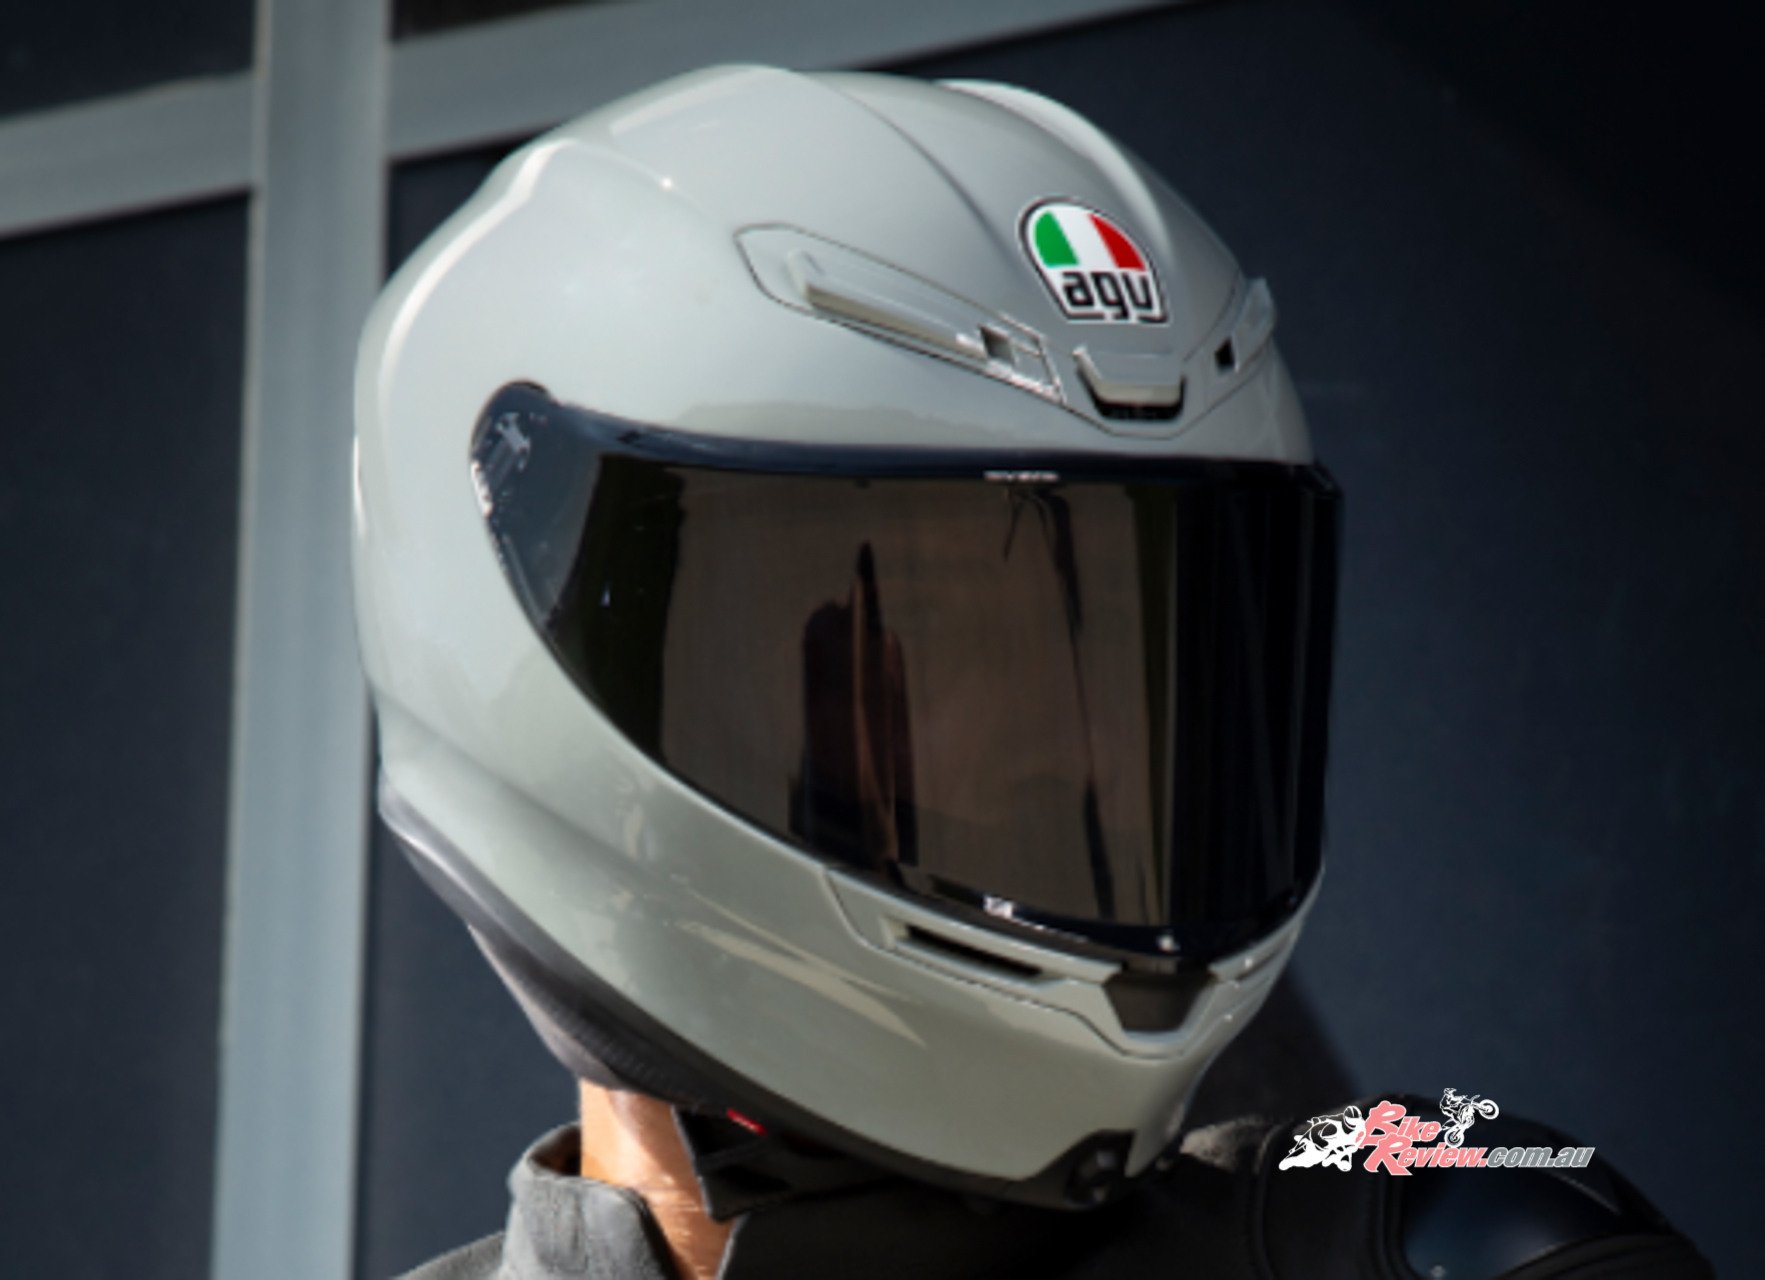 Agv Australia To Launch K6 At Phillip Island This Weekend